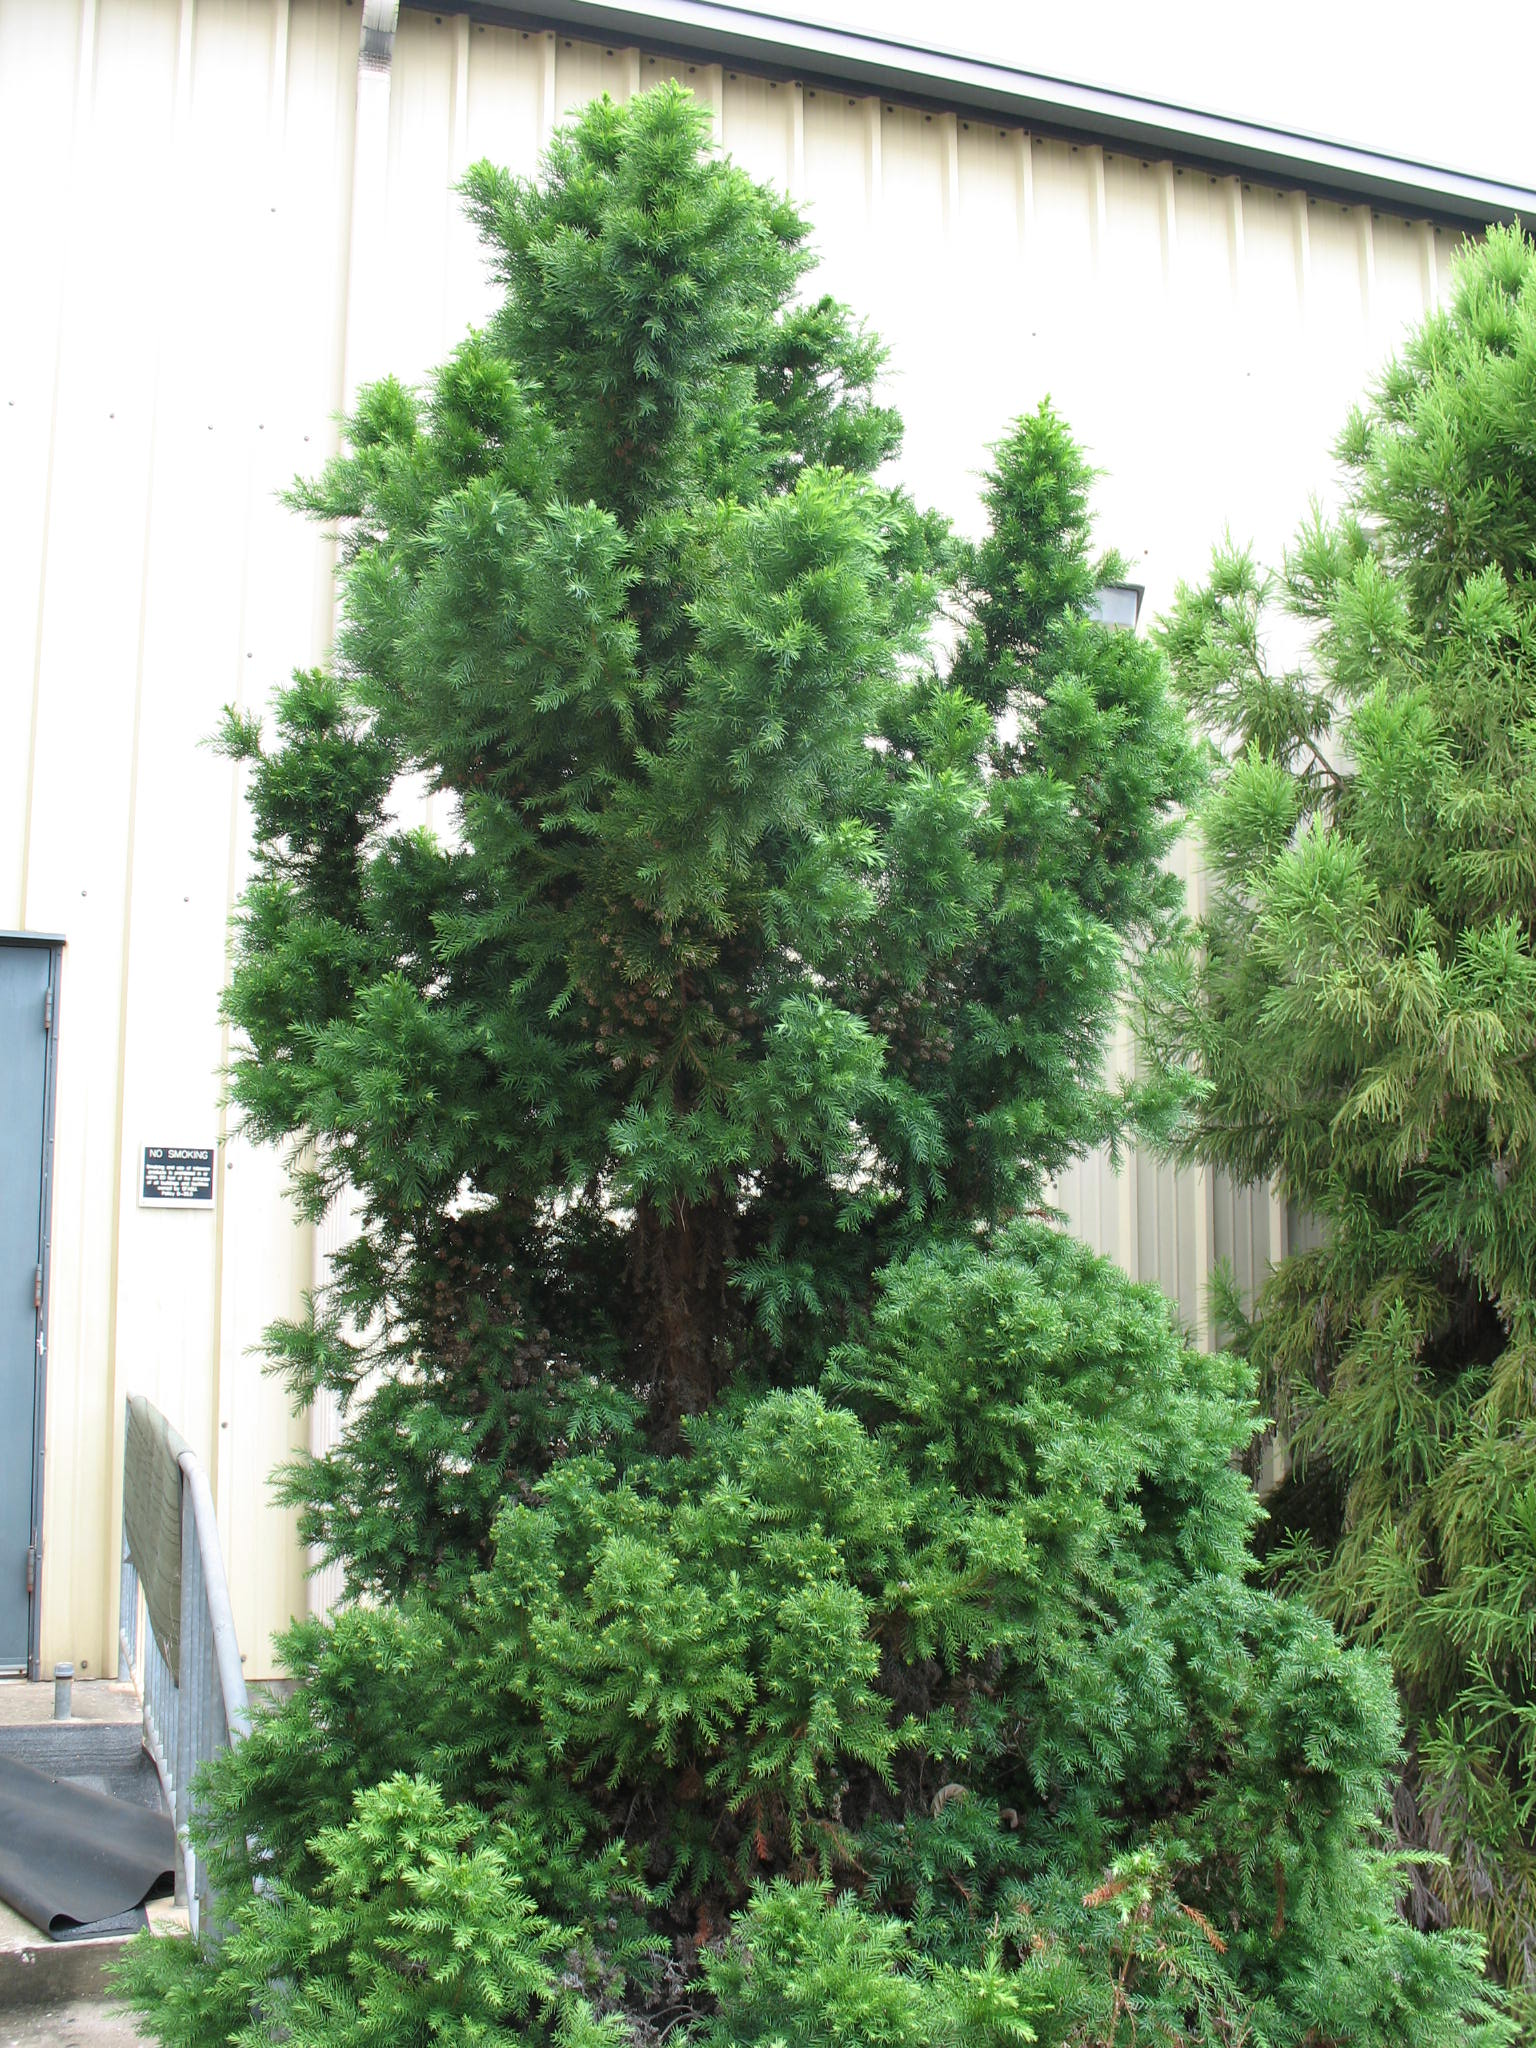 Cryptomeria japonica 'Green Pencil'   / Cryptomeria japonica 'Green Pencil'